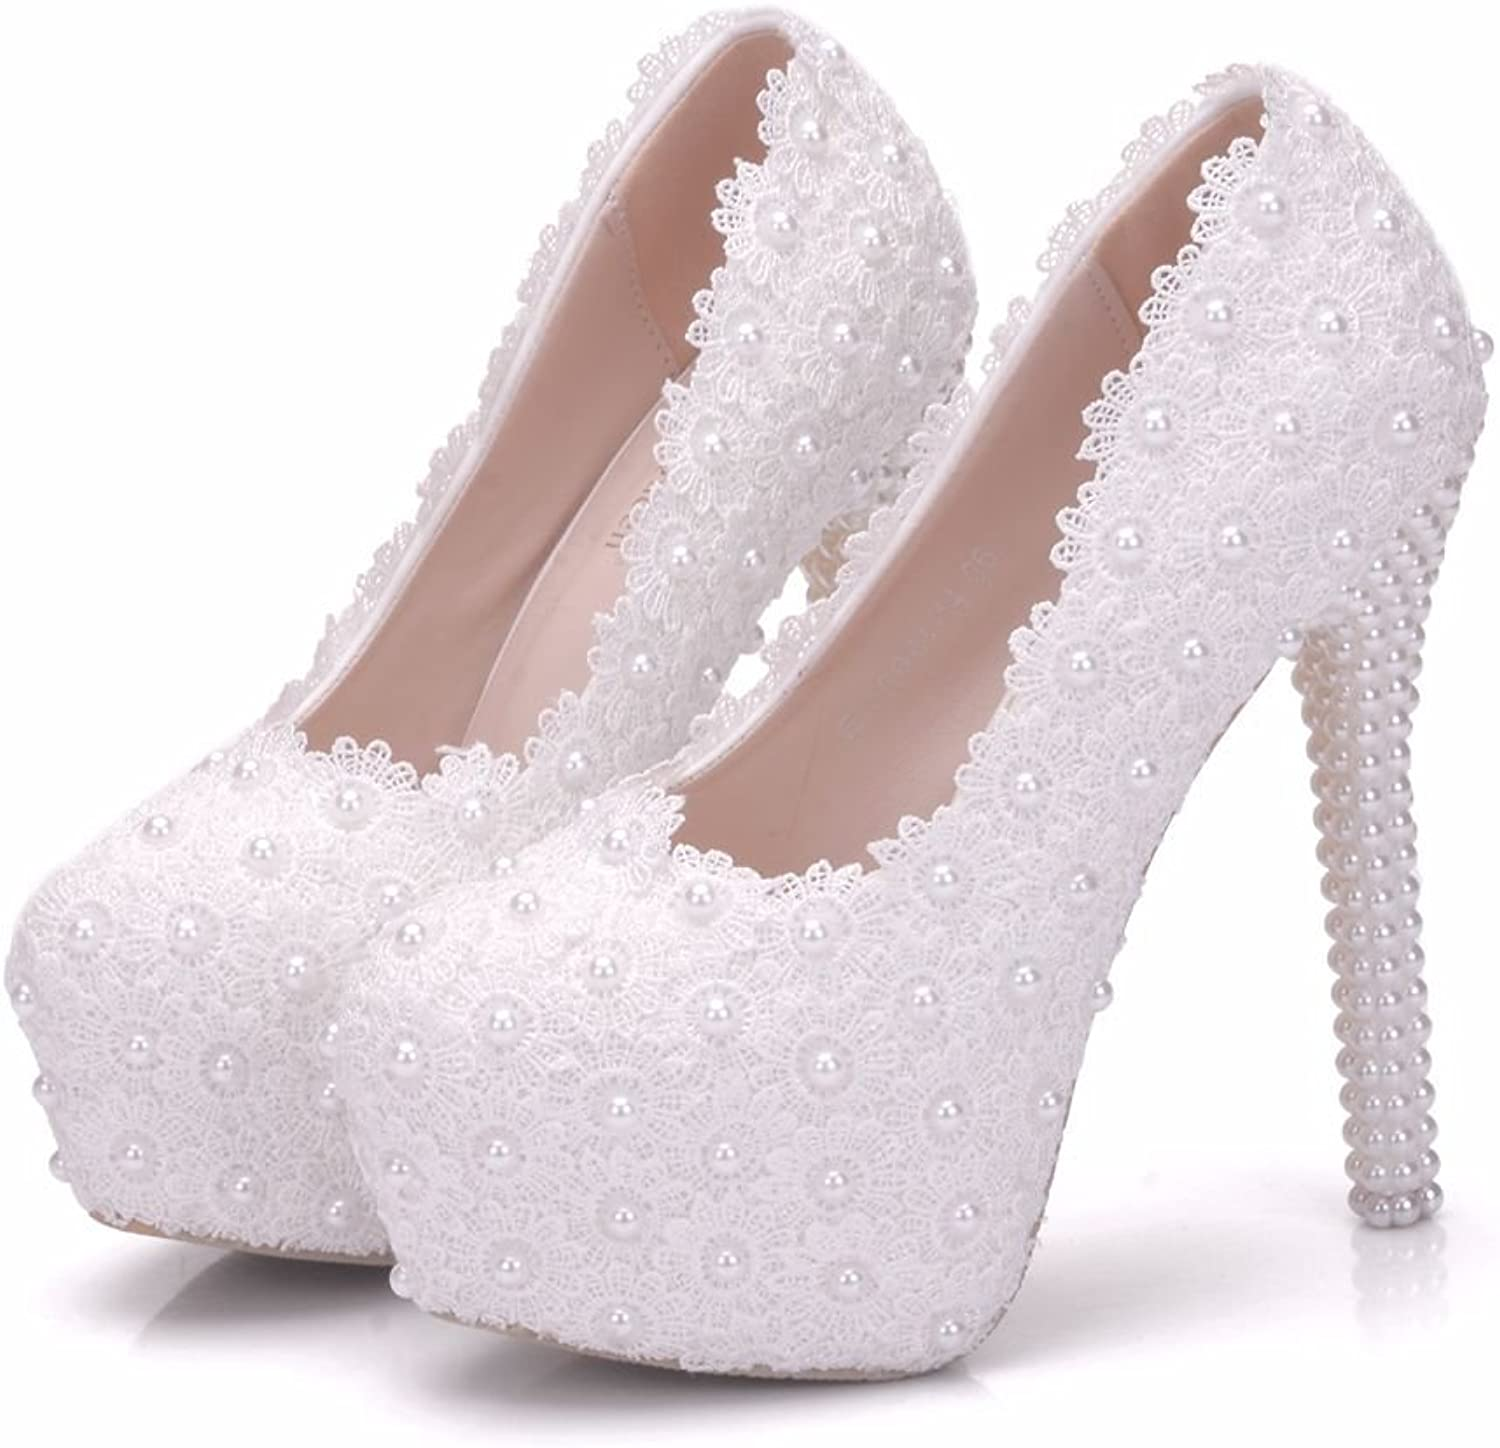 Crystal Queen White Lace Bridal Wedding shoes Thin Heels Round Toe Platform Pumps White Lace Wedding shoes High Heels shoes